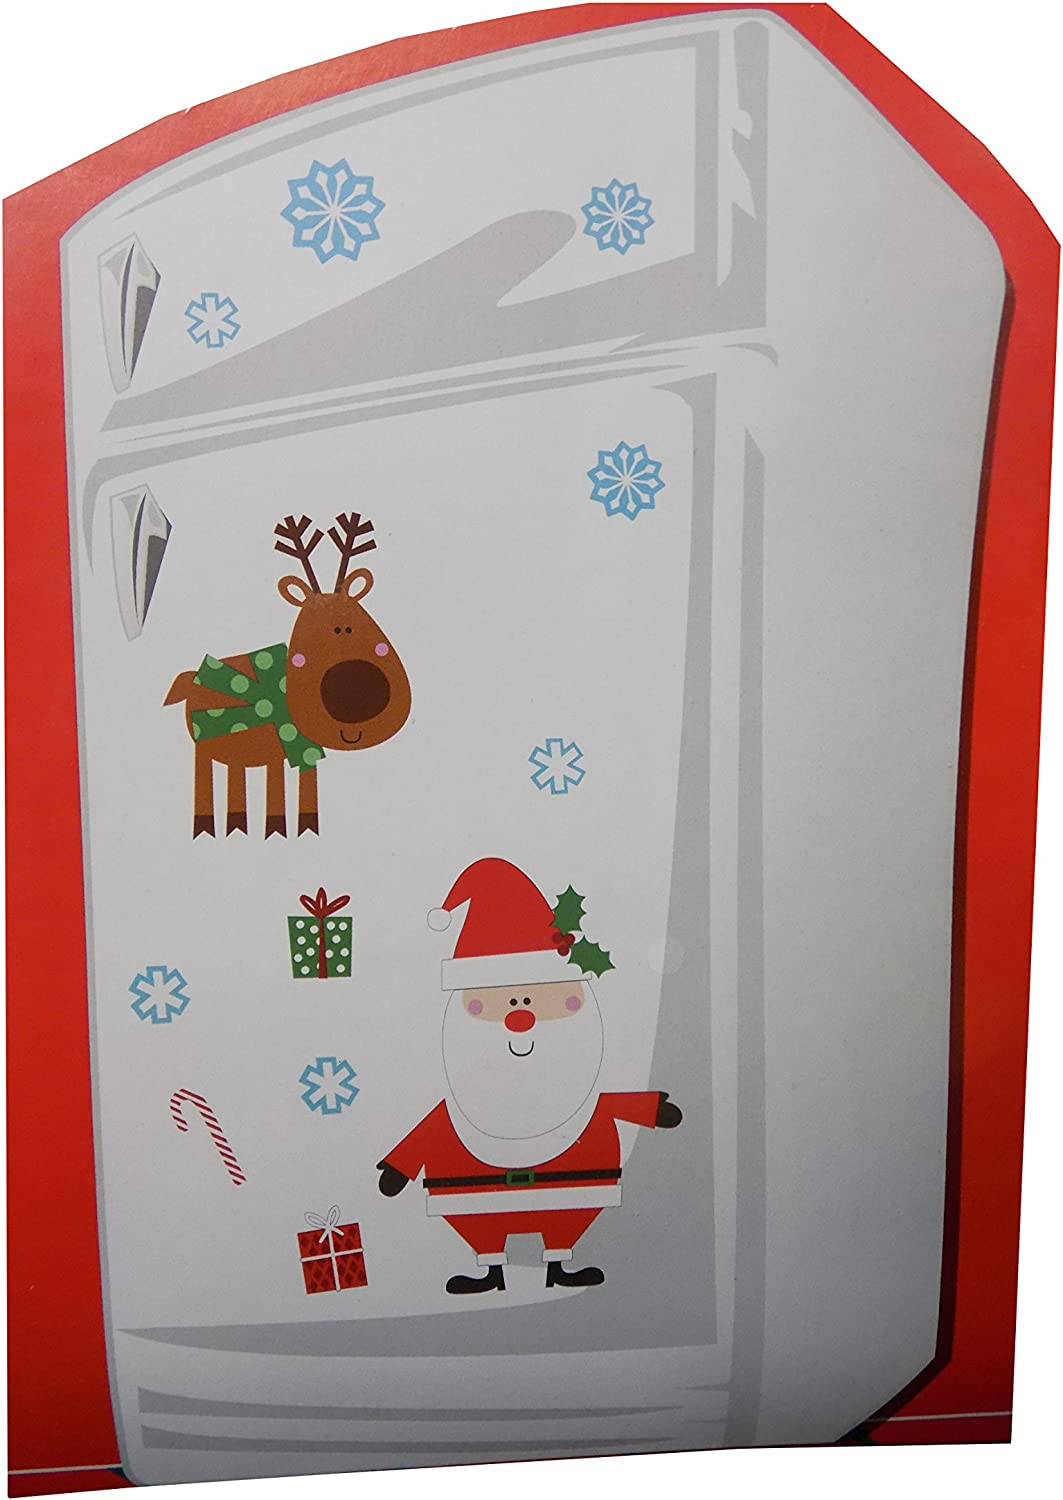 Christmas Themed Magnet Decoration Set for Refrigerator or Metal Door (Santa Claus with Reindeer)